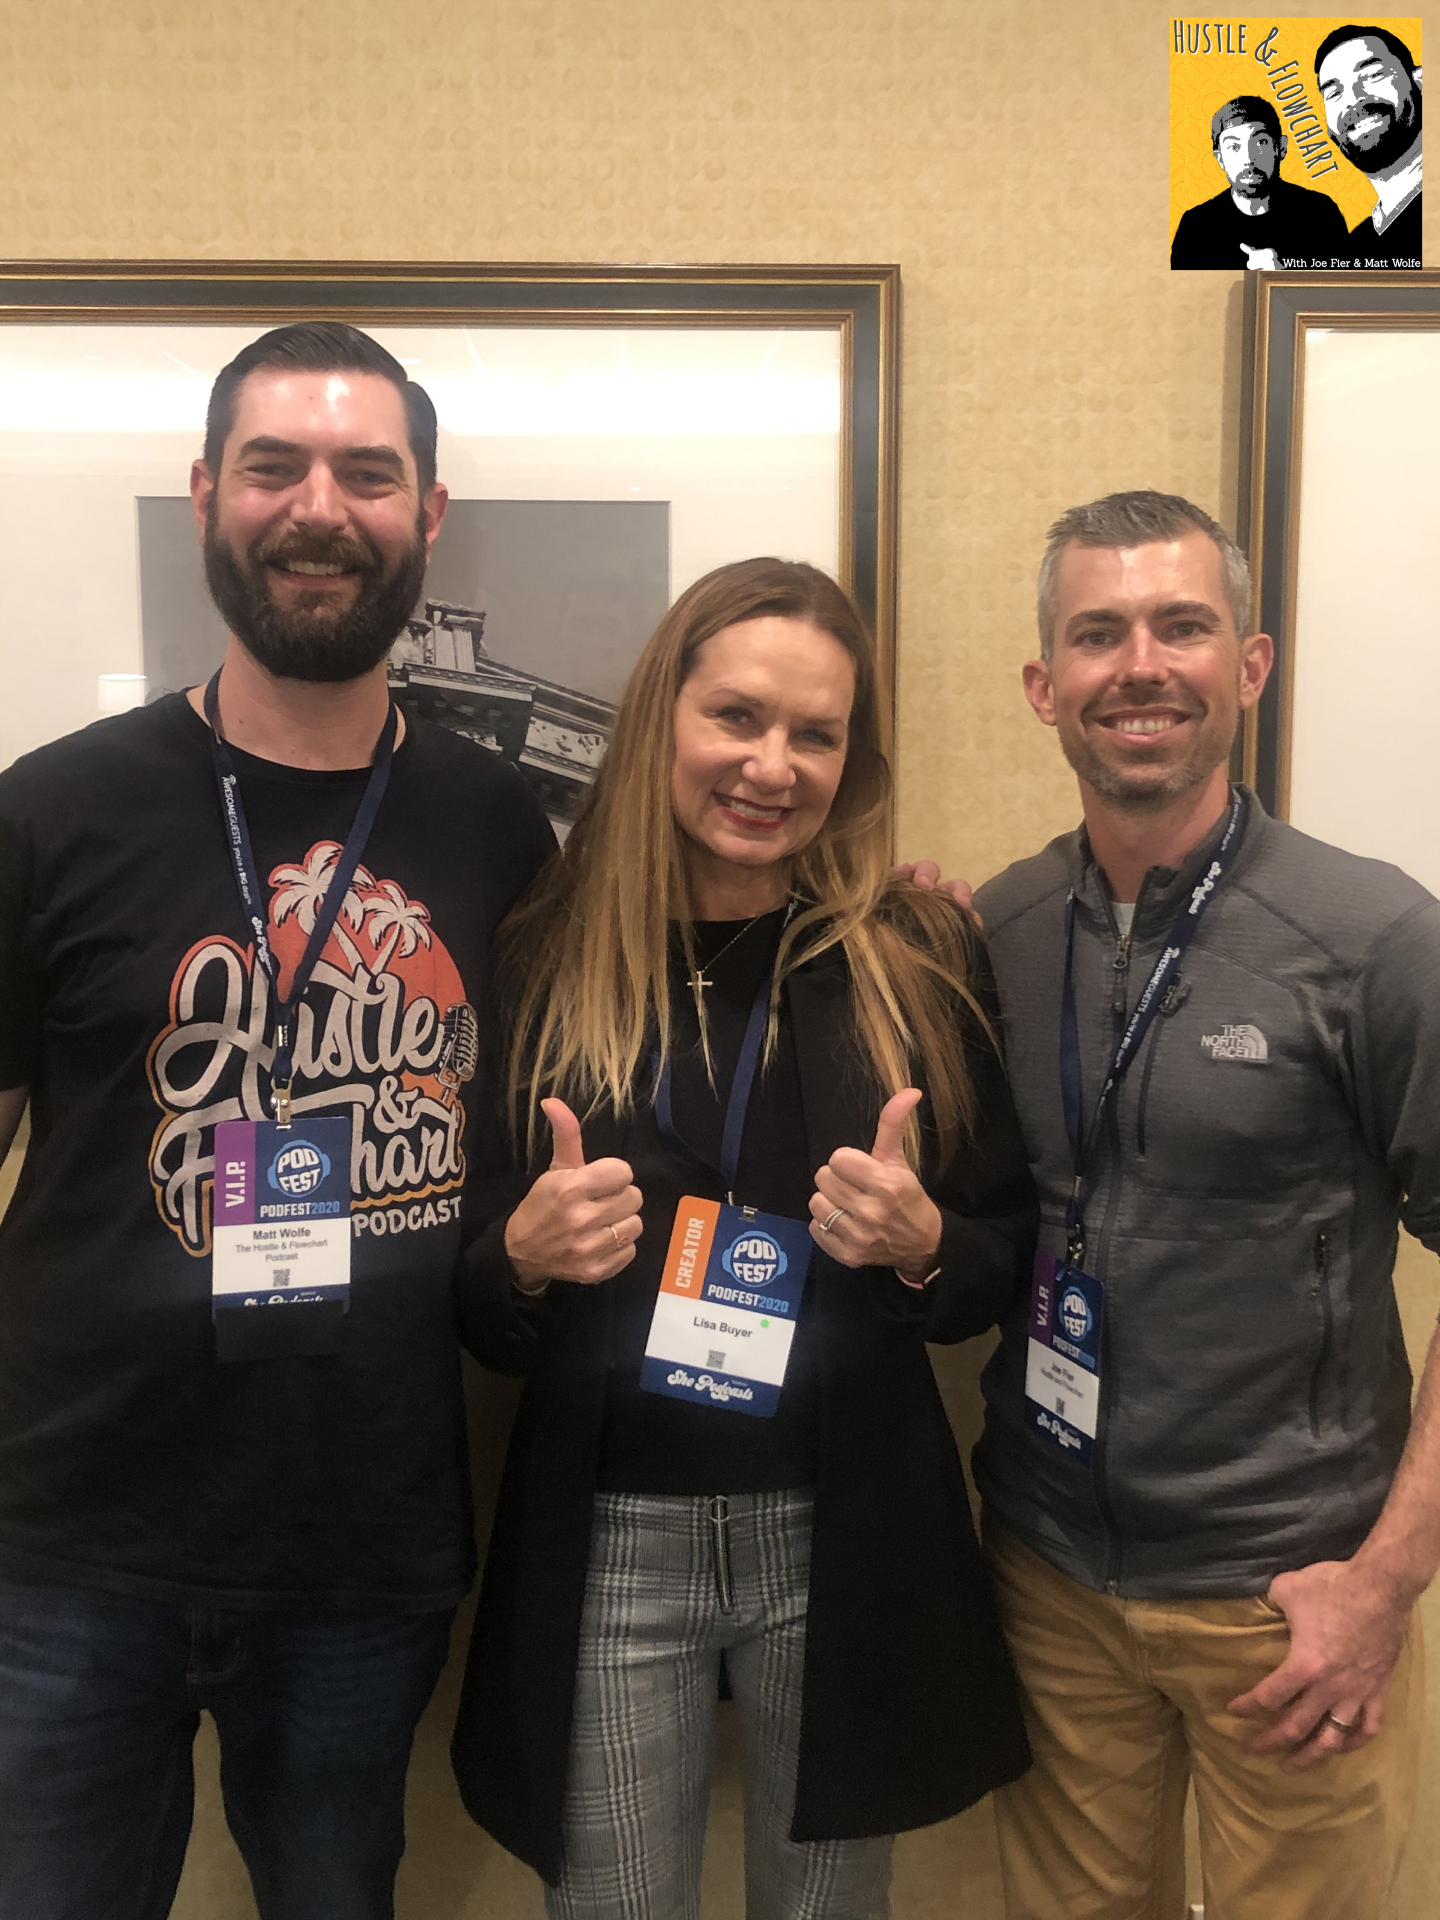 Lisa Buyer with Hustle and Flowchart hosts at Podfest